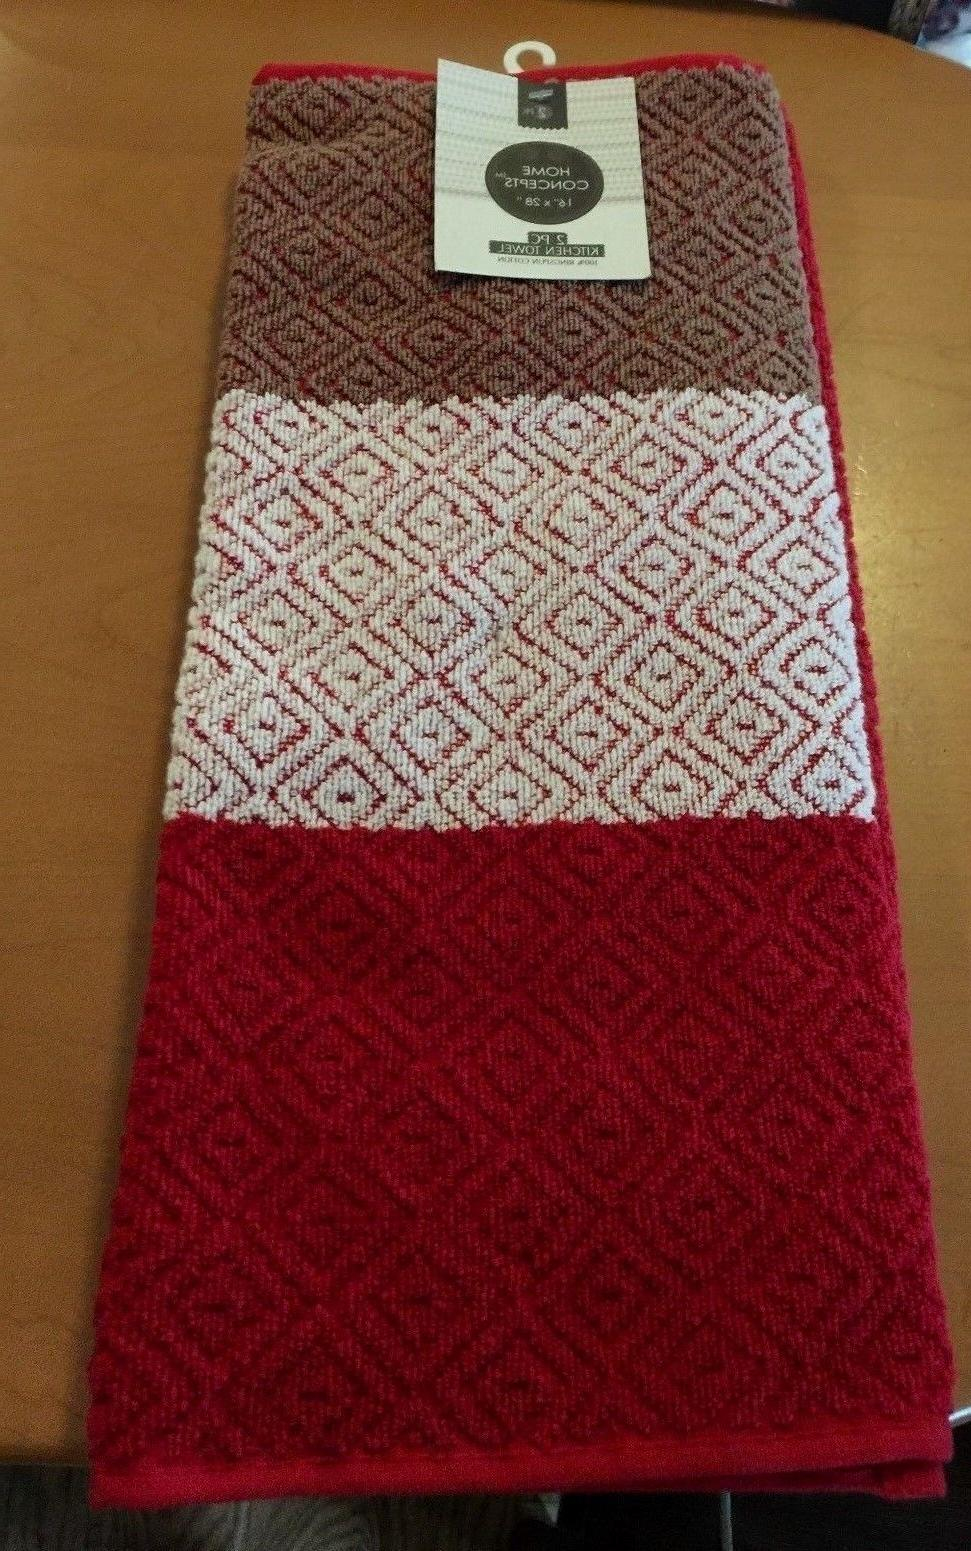 Home Red Kitchen Towels 2pk